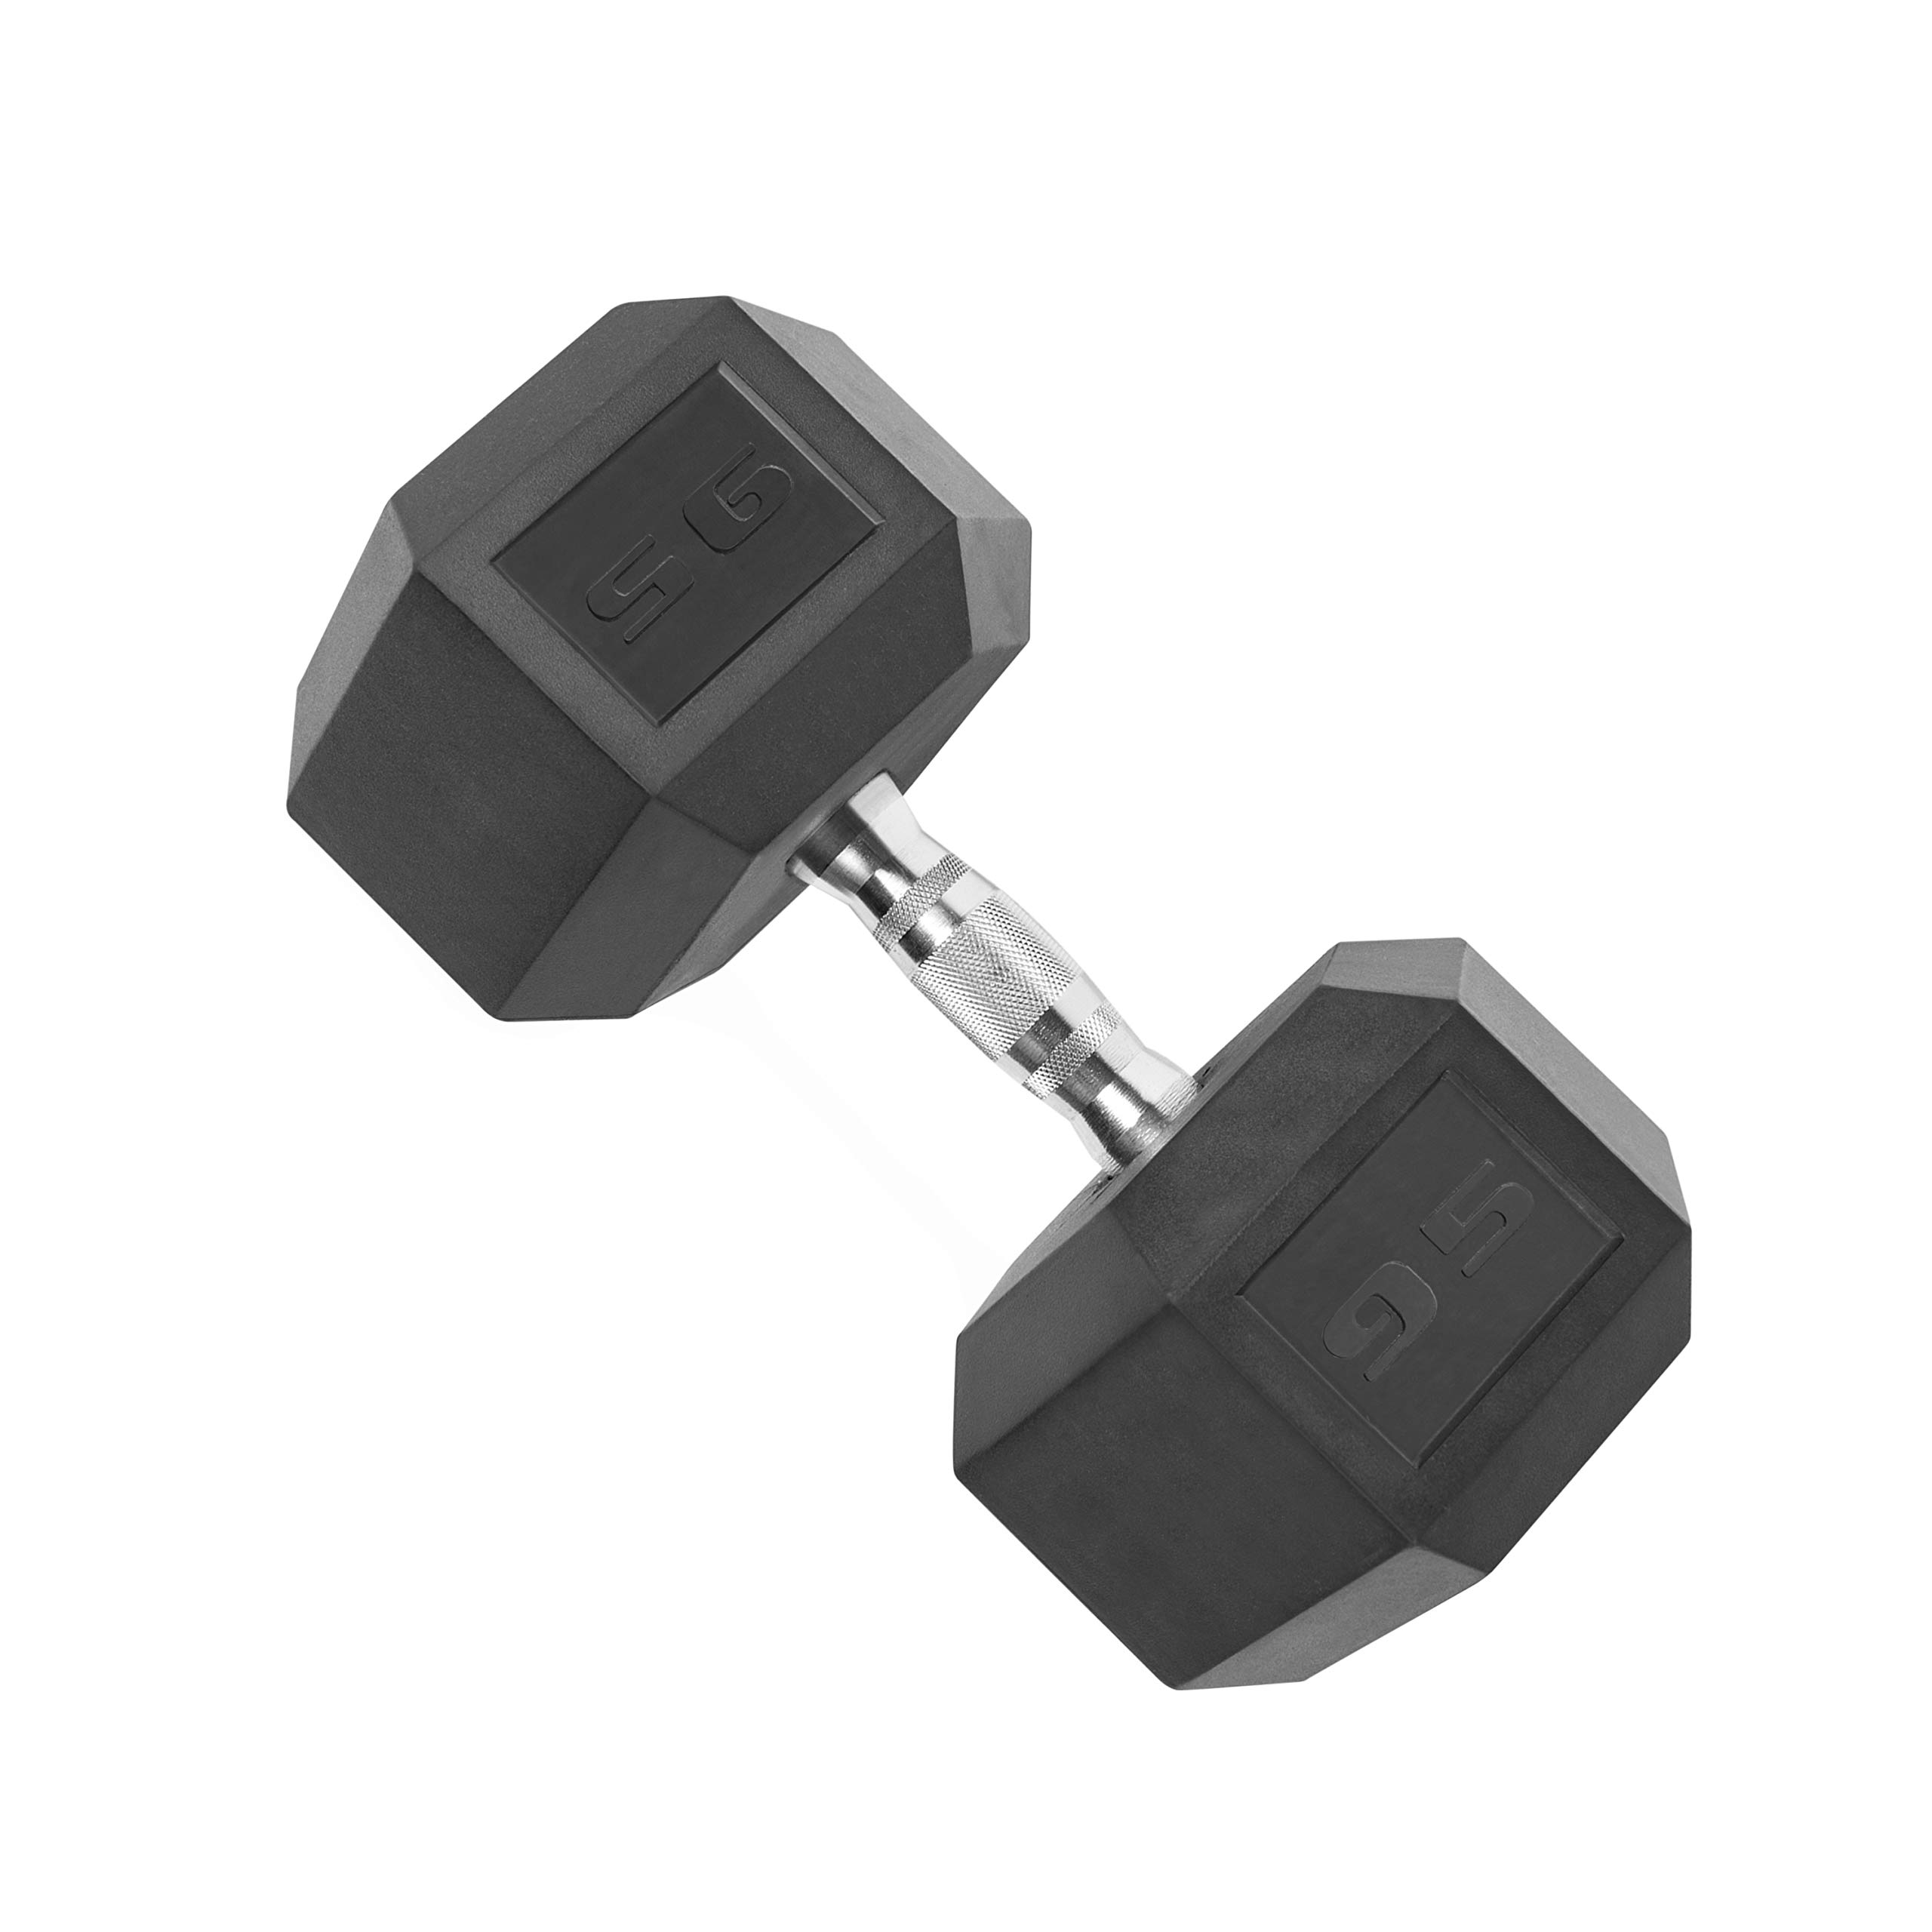 CAP Barbell SDR-095 Rubber Coated Hex Dumbbell with Contoured Chrome Handle (95-Pound), Black